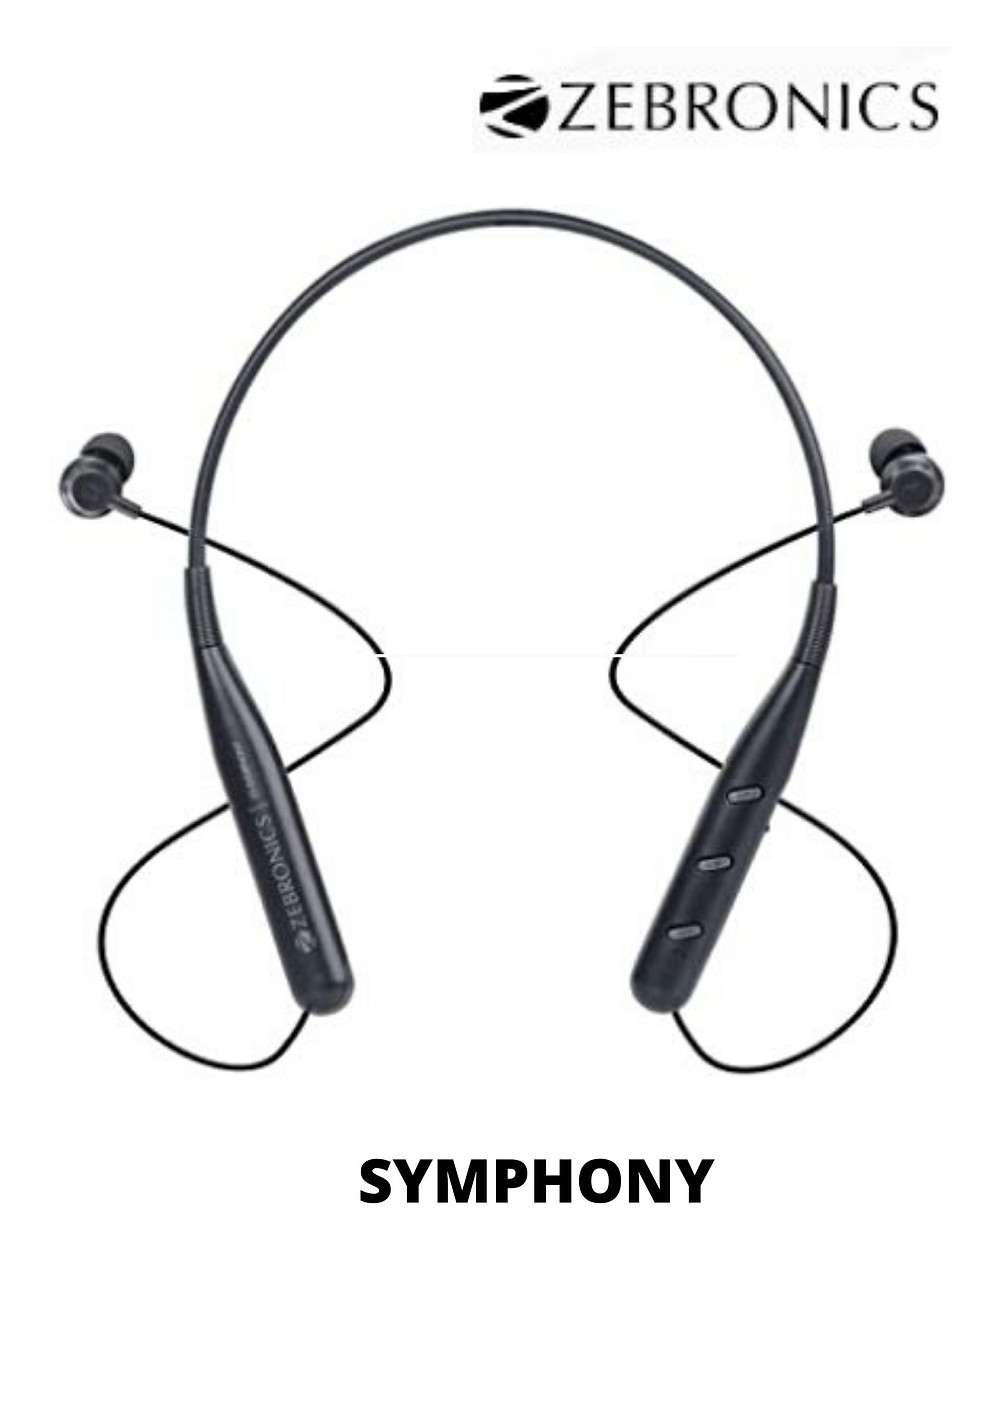 Zeb-symphony is a wireless earphone with neckband and volume/media control Bluetooth range: 10 meters , It has dual pairing and magnetic earpiece It is splash proof, full charge indication and has call function It also has voice assistant support and built-in rechargeable battery Speaker impedance 16 Ohm Playback time 13 hours Charging time 2.5 hours 1 Year Warranty. Carry into Service Center. For List of Service Centers, see Product Information